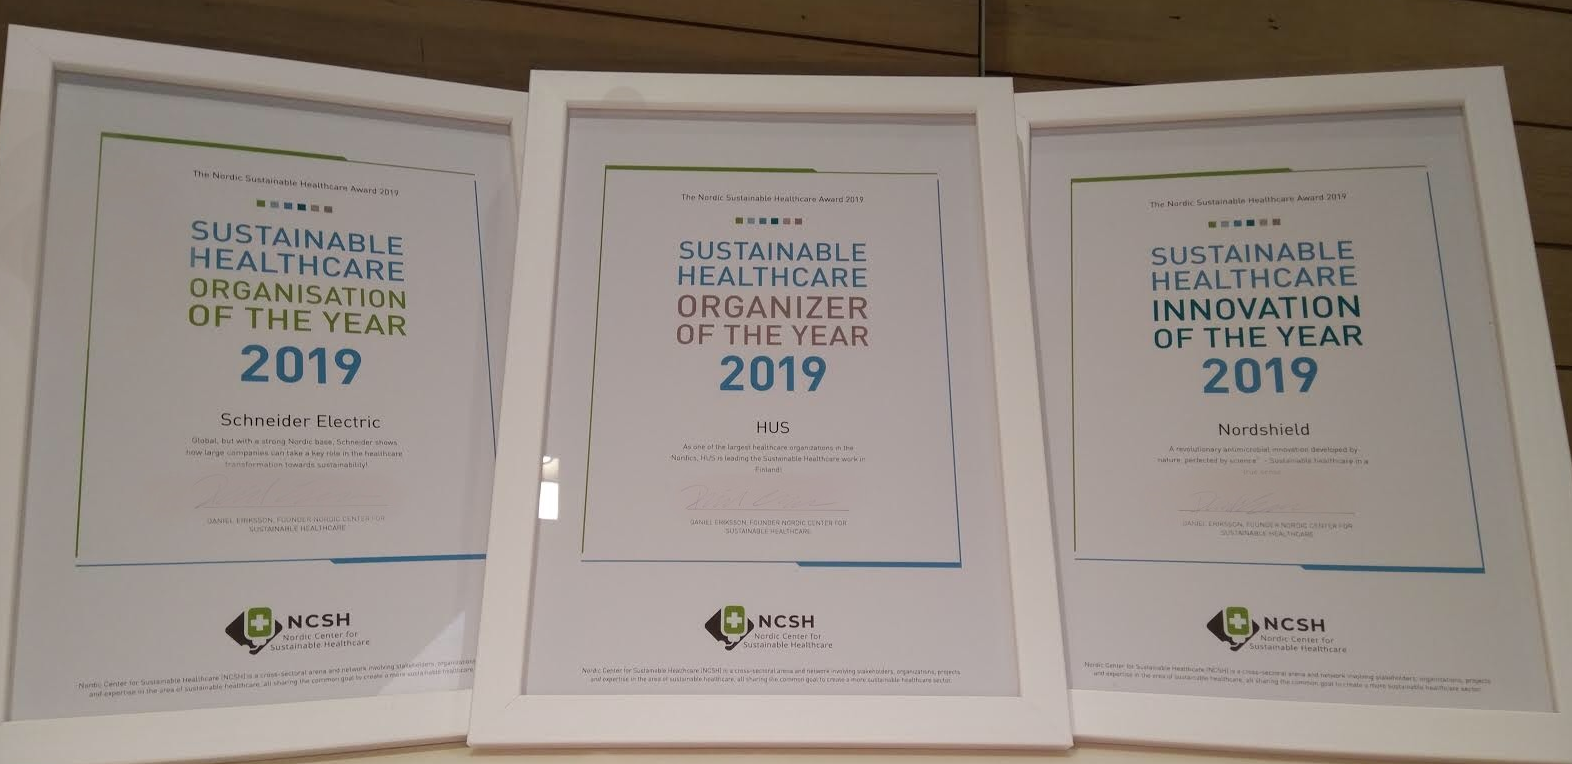 Winners - The Nordic Sustainable Healthcare Awards 2019